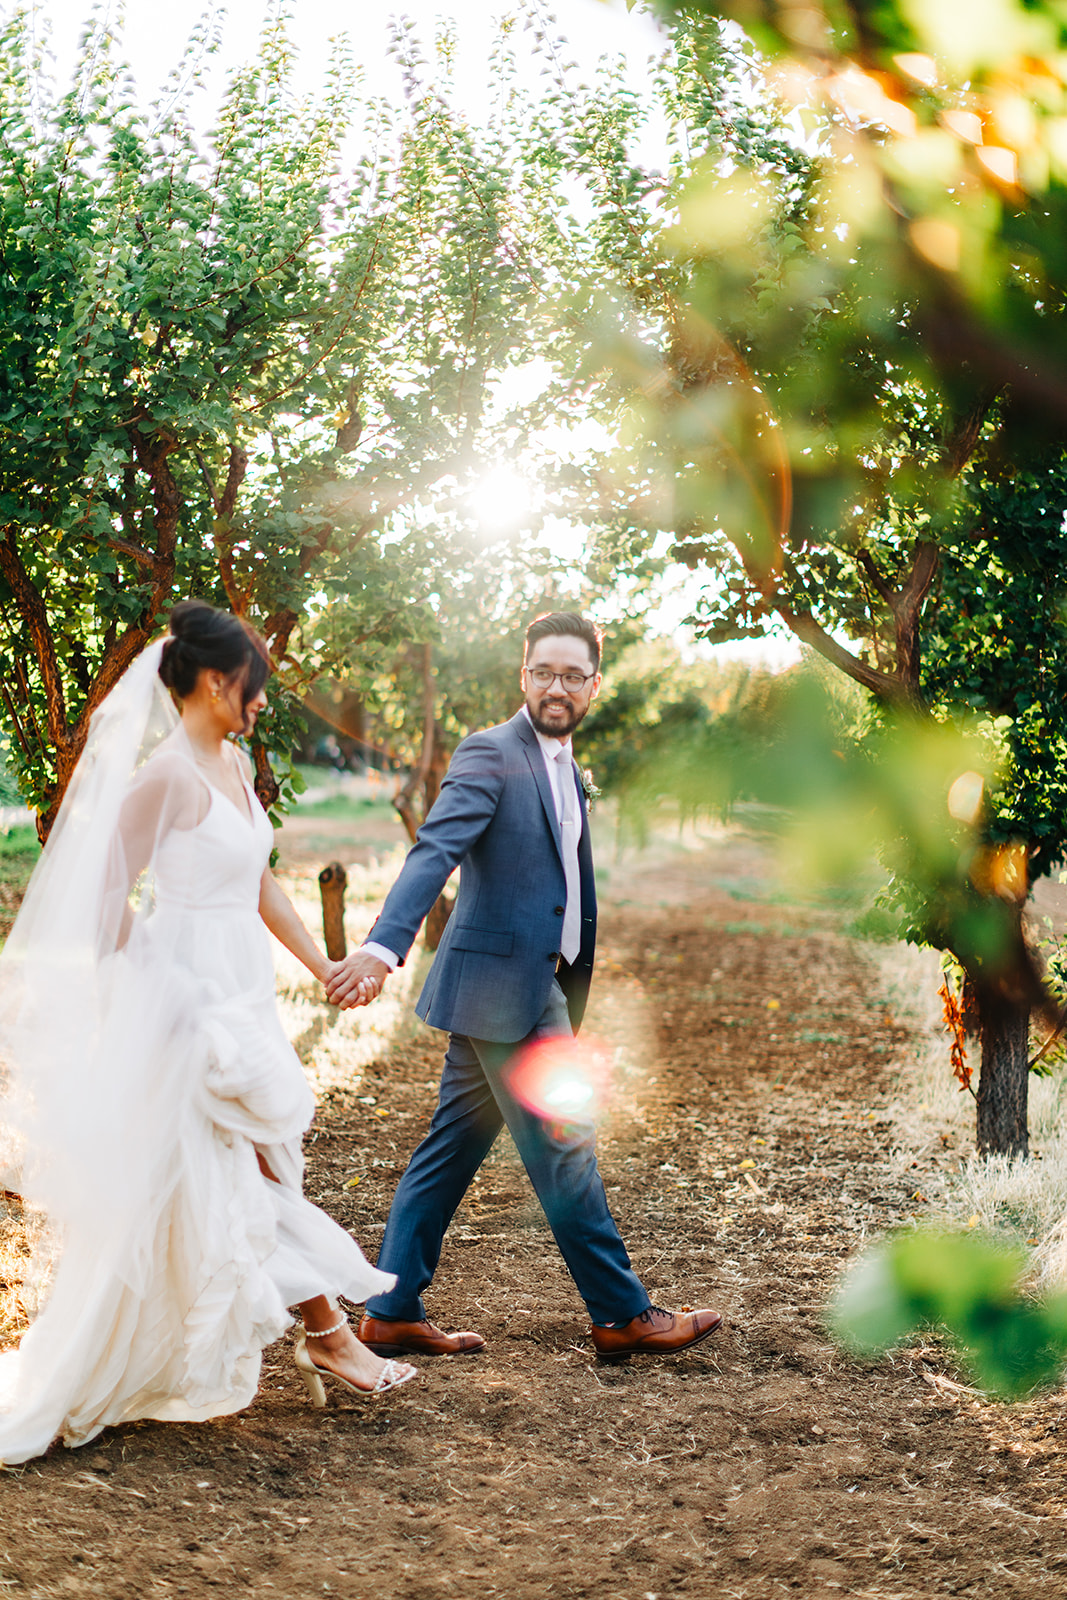 Los-Altos-History-Museum-Wedding_Orange-County-Wedding-Photographer_Clarisse-Rae-Photo-Video_84